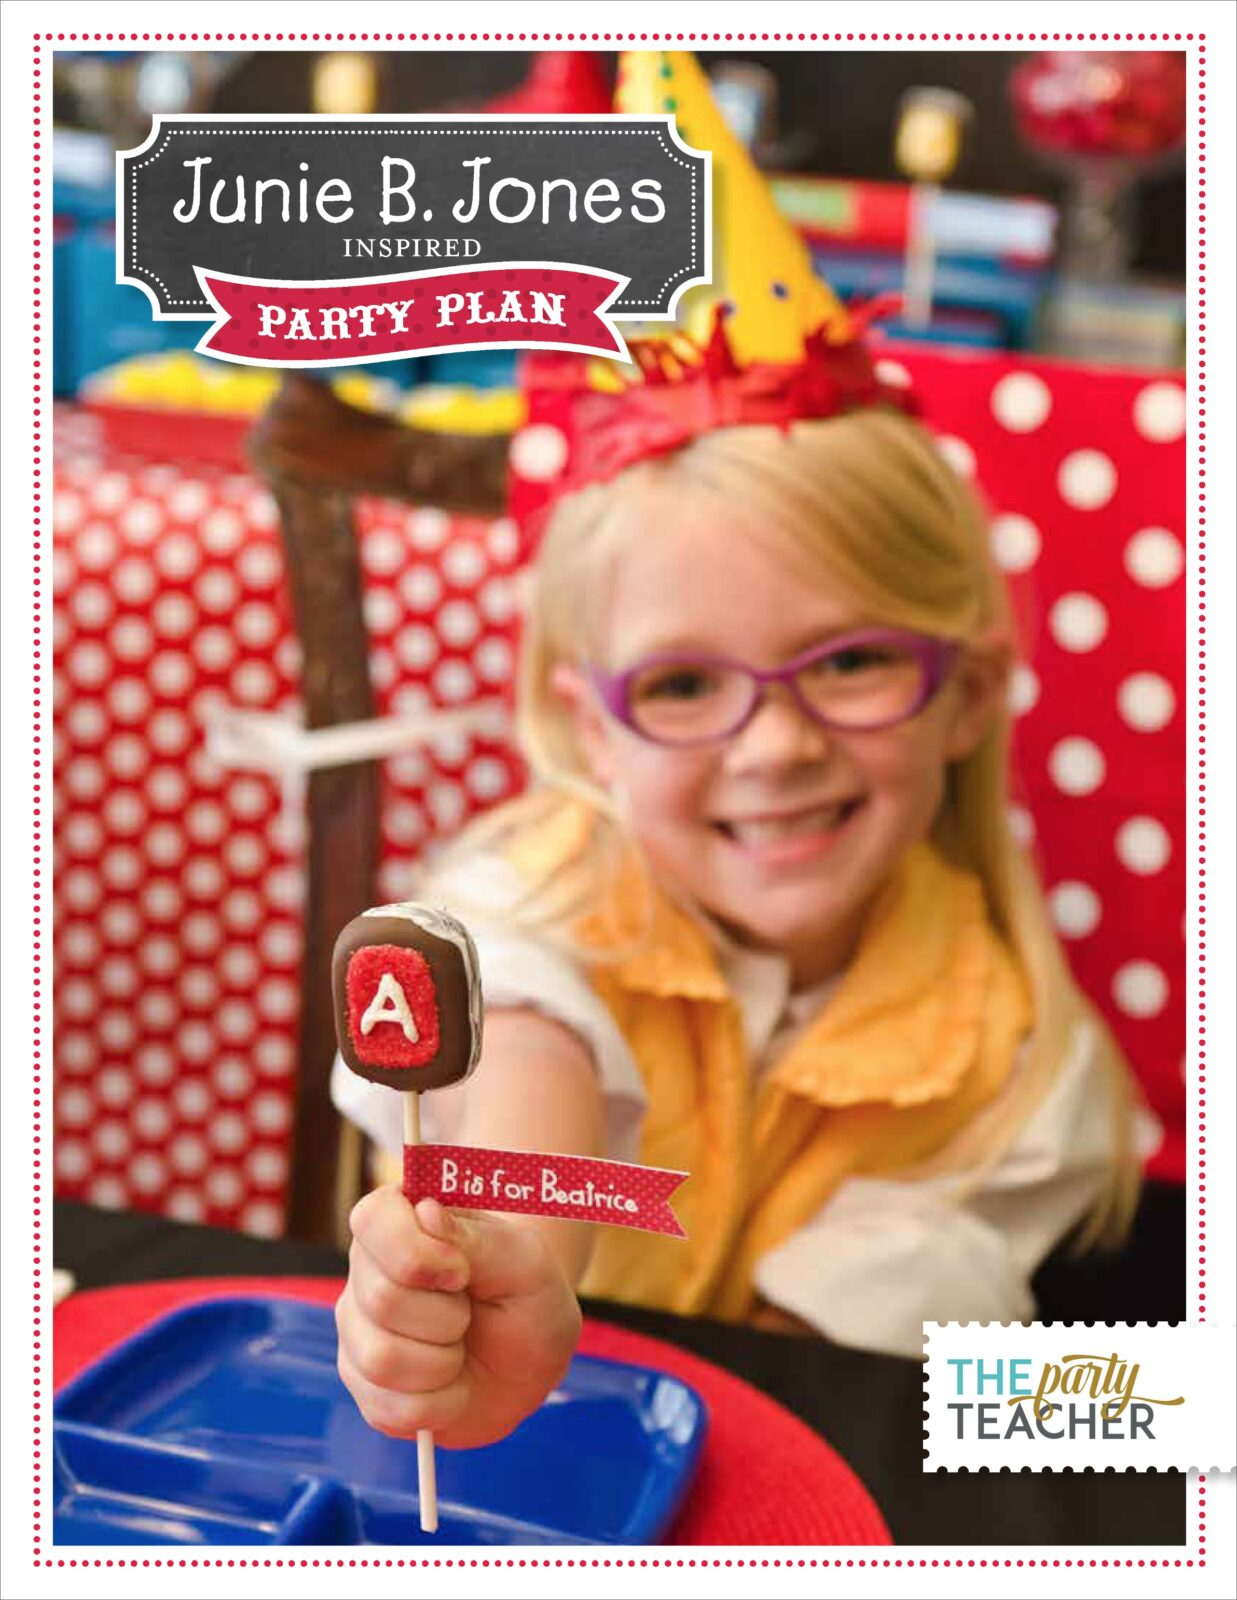 Junie B Jones Party